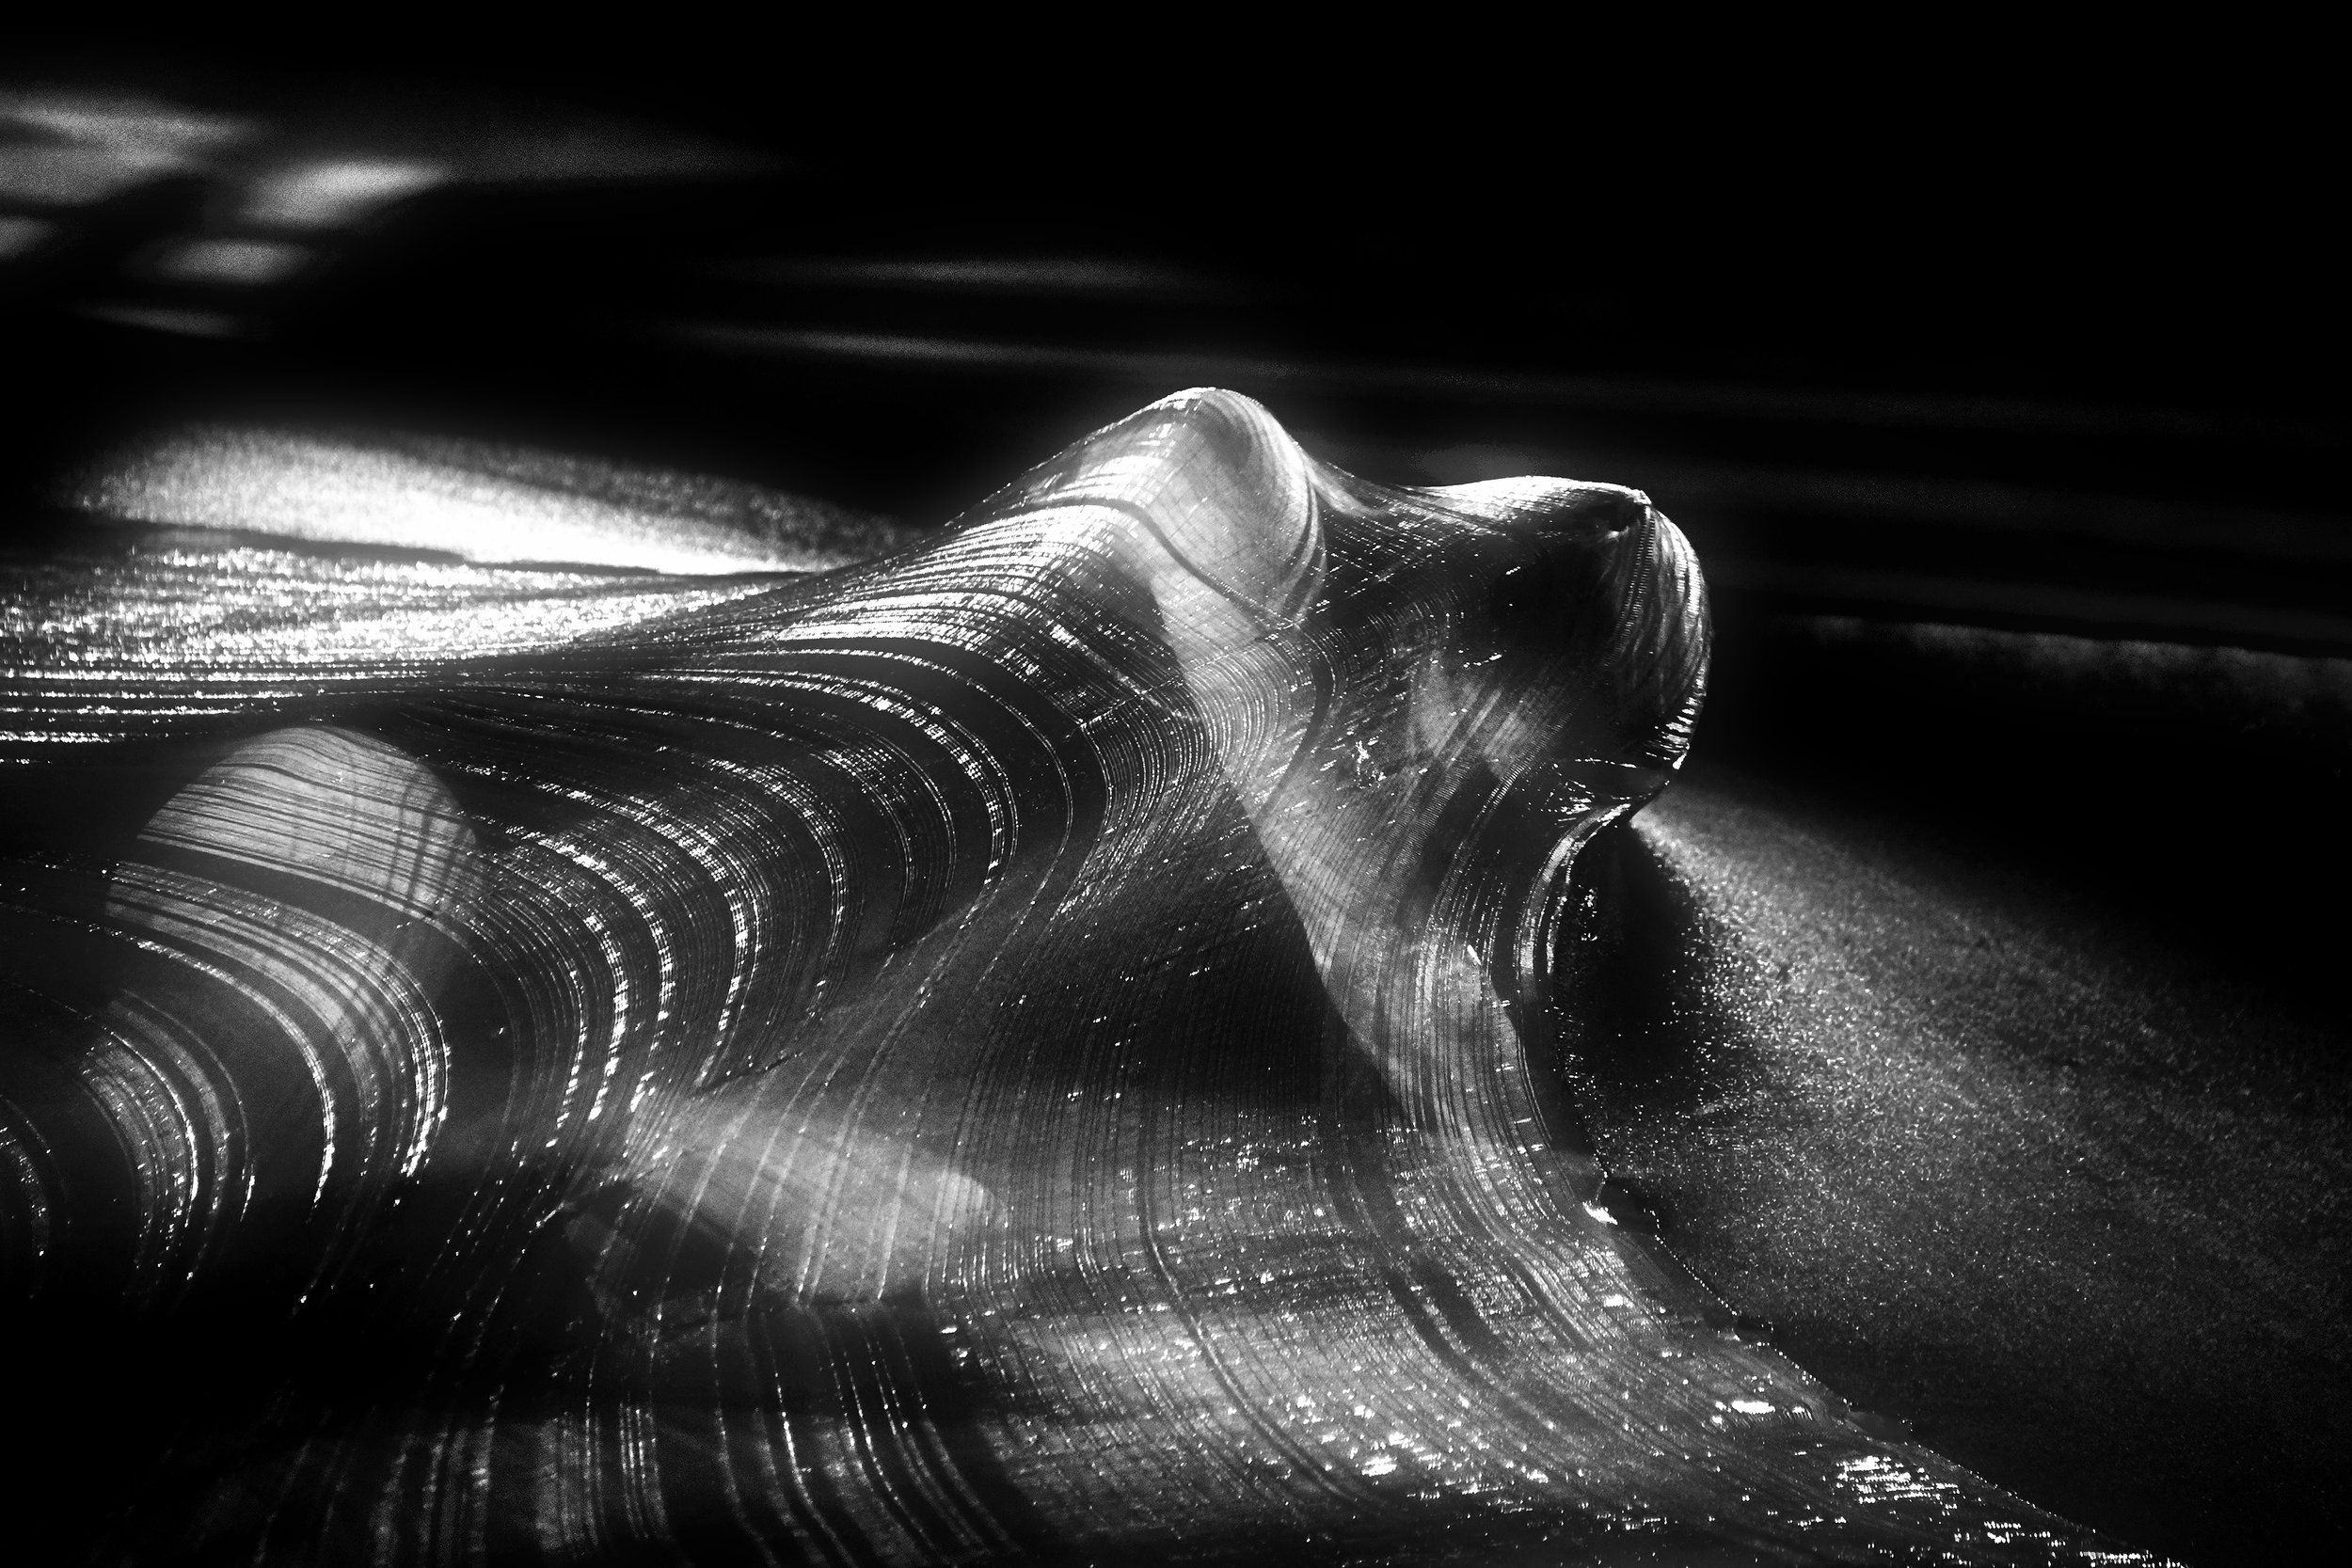 _DSC0503 ReT CROP-DODGE- Tonality Monochrome DreamsSheet+LinCon-CROP12x8-IncSat-Con1-Lighter.jpg